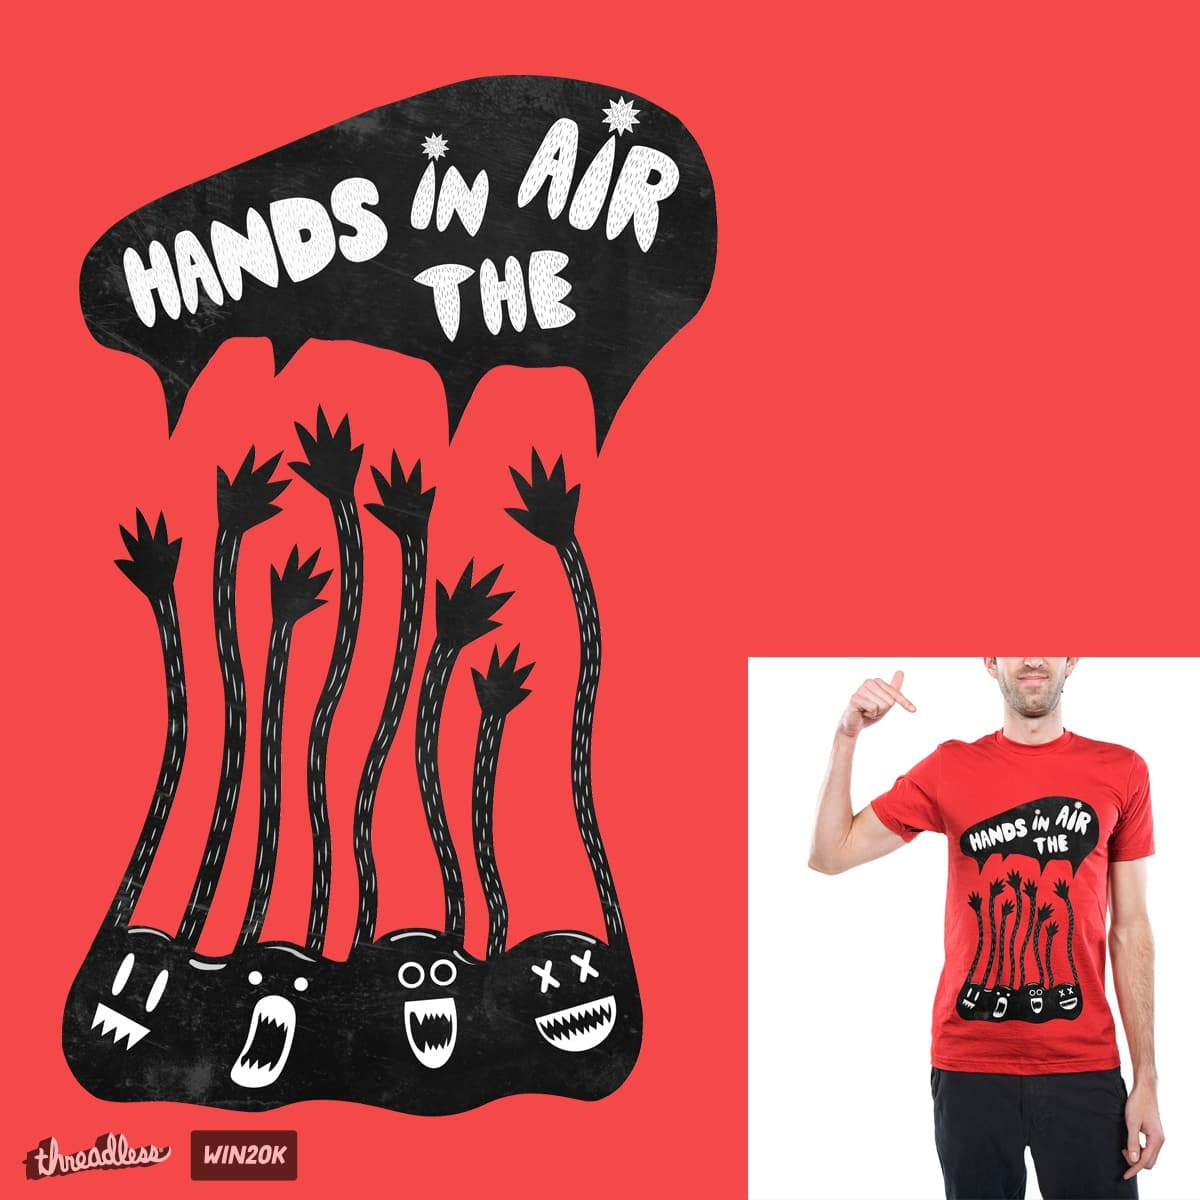 Hands In The Air 2 by JianART on Threadless